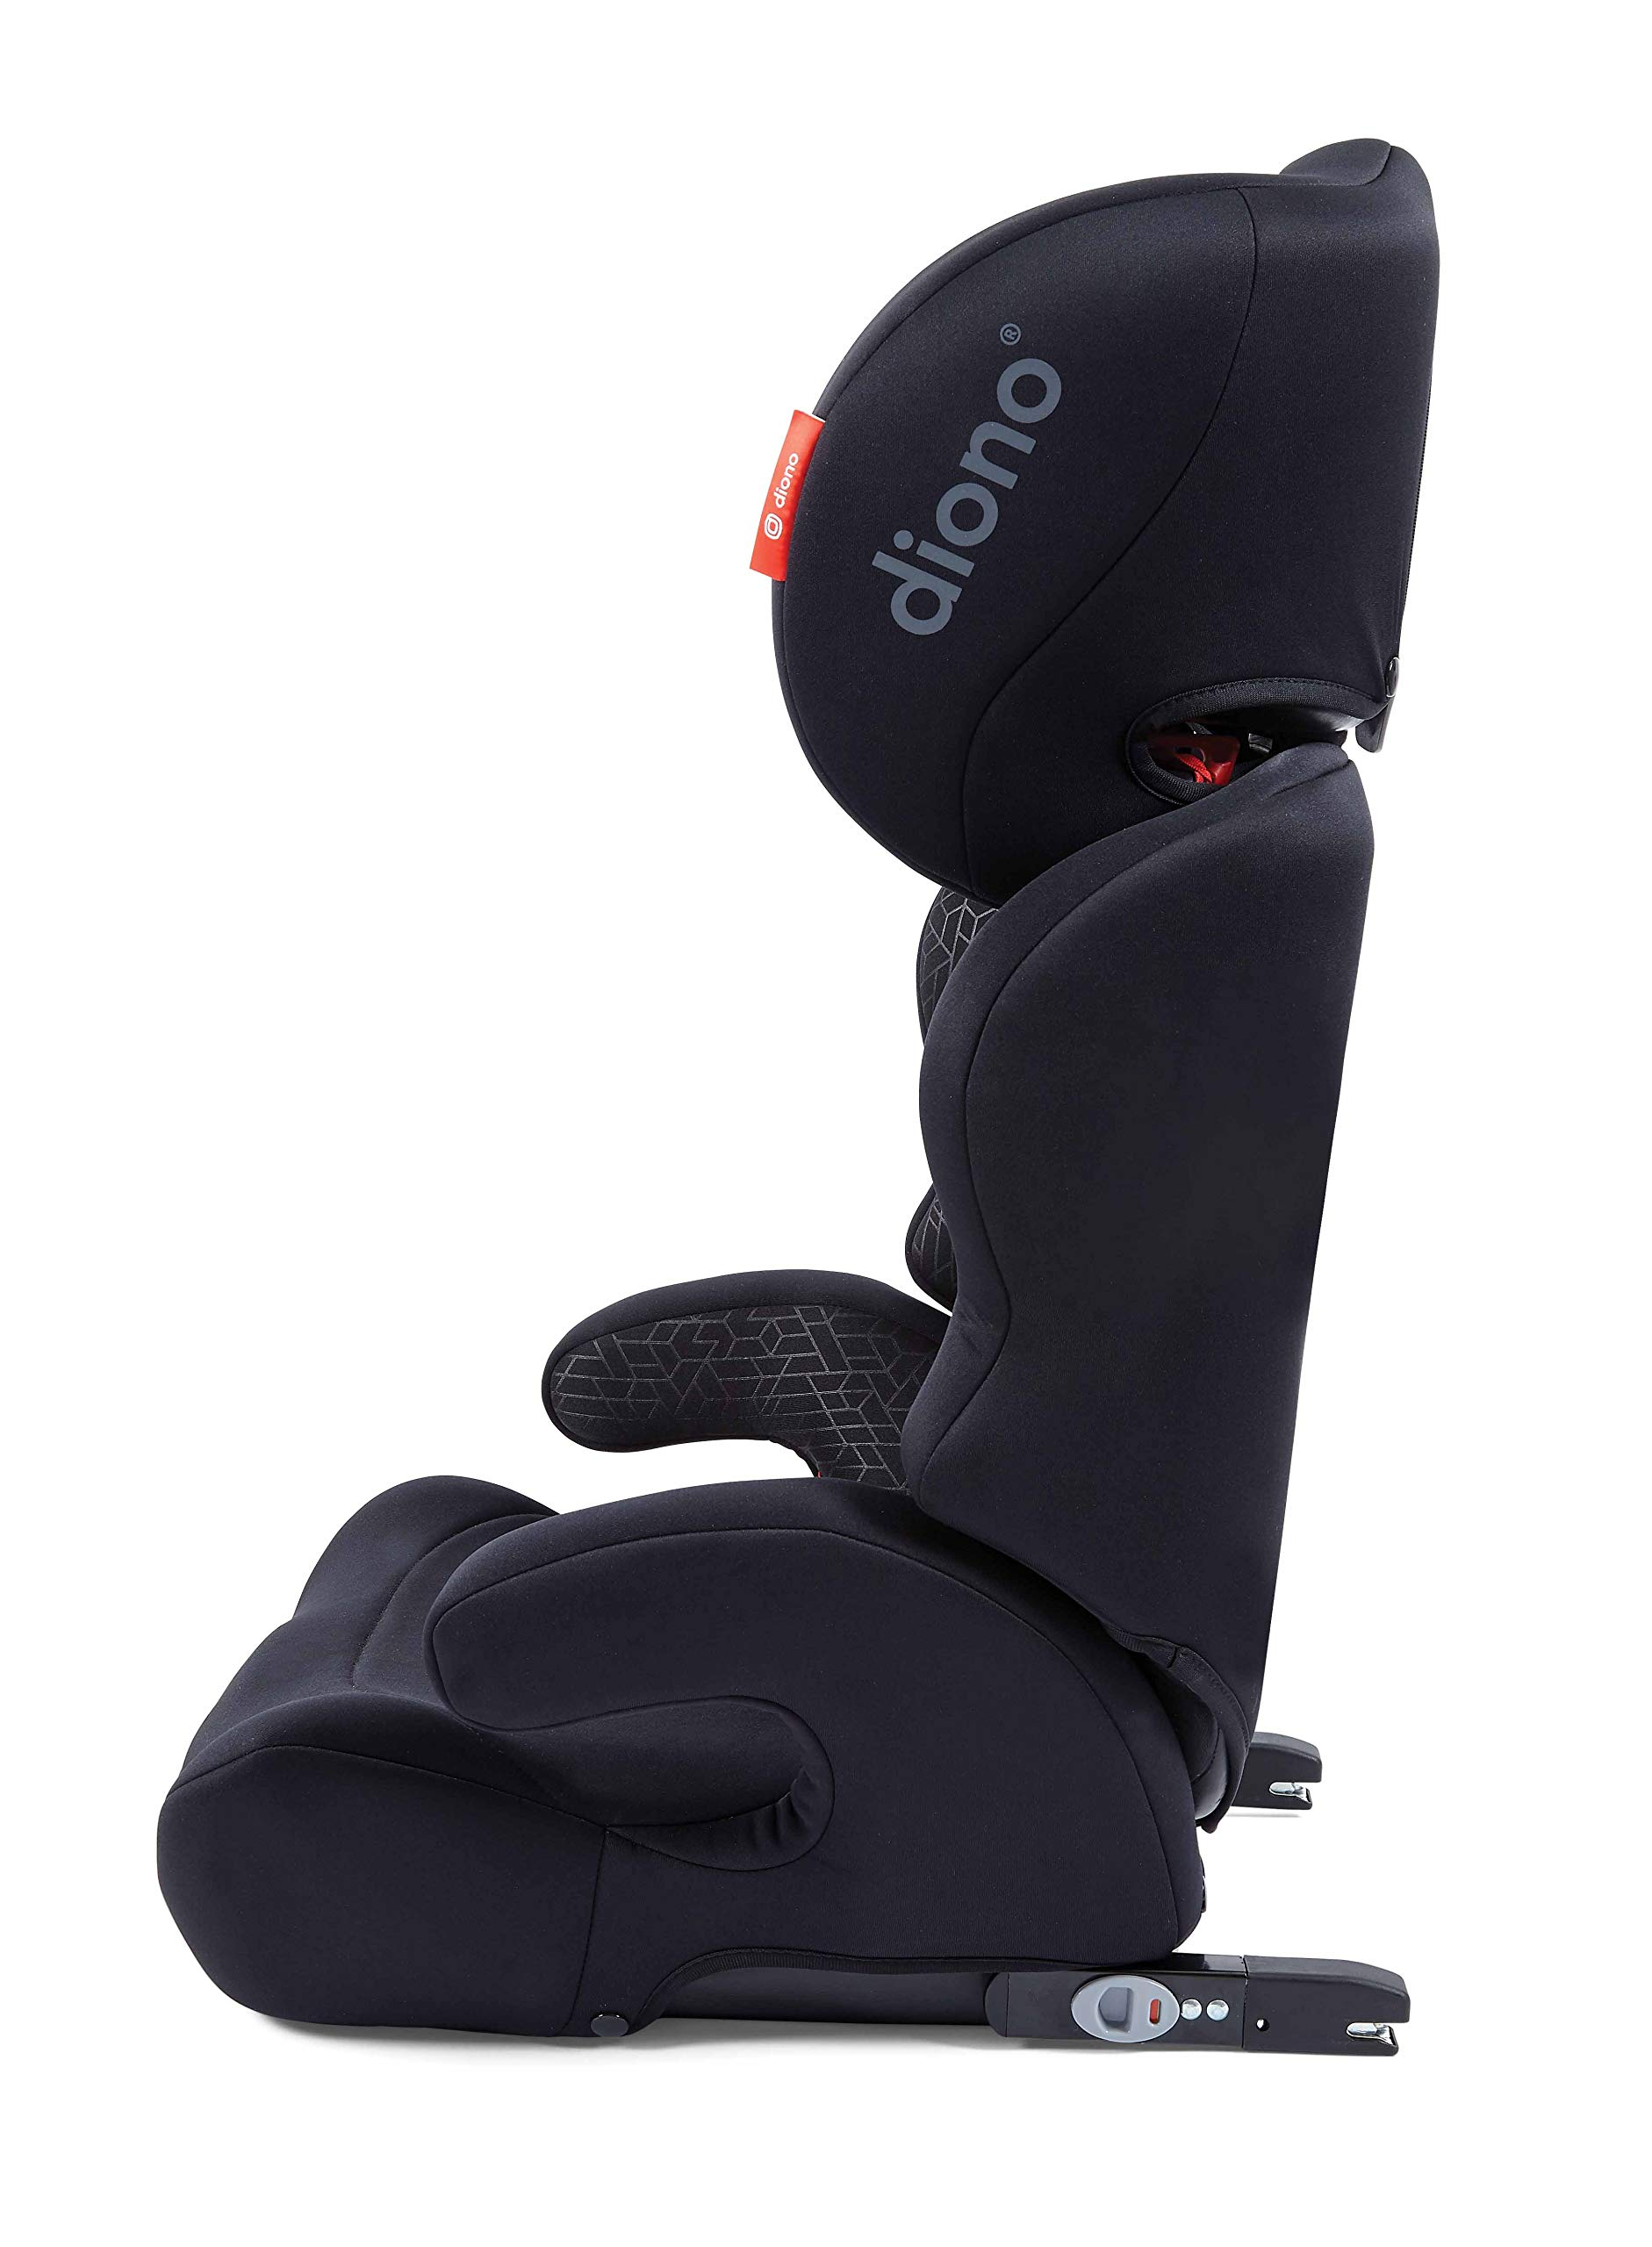 Diono Everett NXT Fix Highback Booster Seat - 7 Position Adjustable Headrest, Group 2/3 (15 - 36 kg and Up to 160 cm In Height), Approx. 4-12 Years, Black Diono Designed to grow: group 2/3 car seat is suitable from 18kg - 50kg, approx. 4 to 12 years old. The 7-position adjustable headrest can be altered using the handle on the back of the seat Superior safety: cushioned side impact protection has been engineered and tested to the highest standards. The ergonomic design includes extra padding to provide comfort and security as a child grows Universal connectivity: parents can install the seat using the vehicle seatbelt or use the integrated rigid latch connectors that anchor the seat to the car allowing the child to buckle themselves in 11